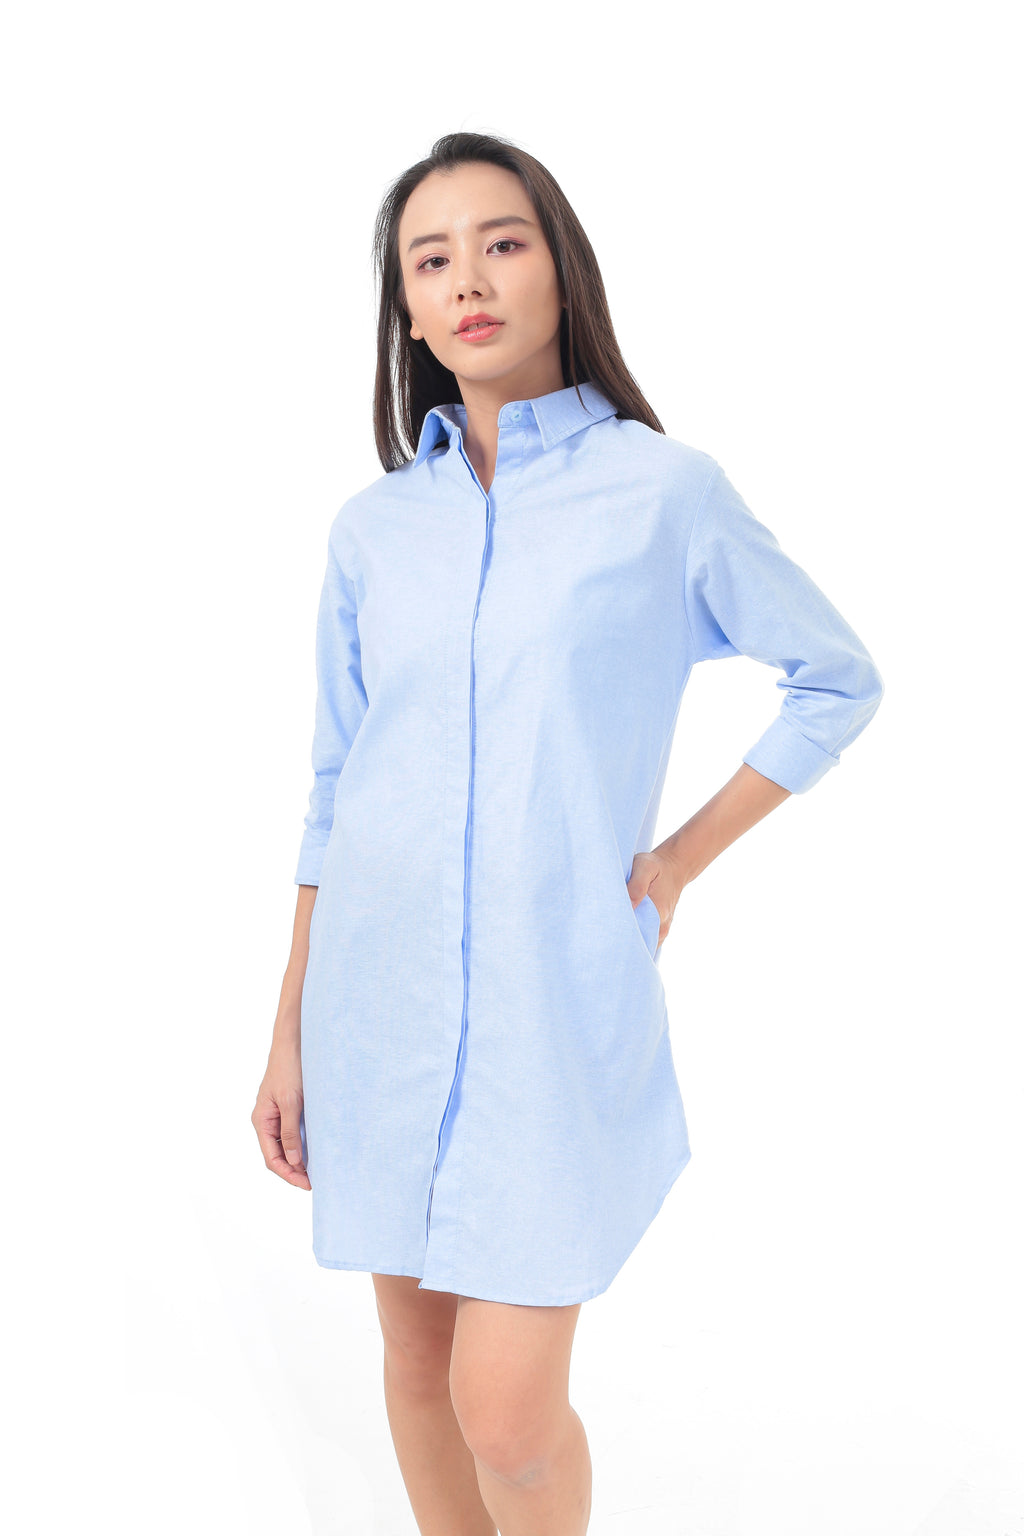 Casey Dress in Blue (Preorder)